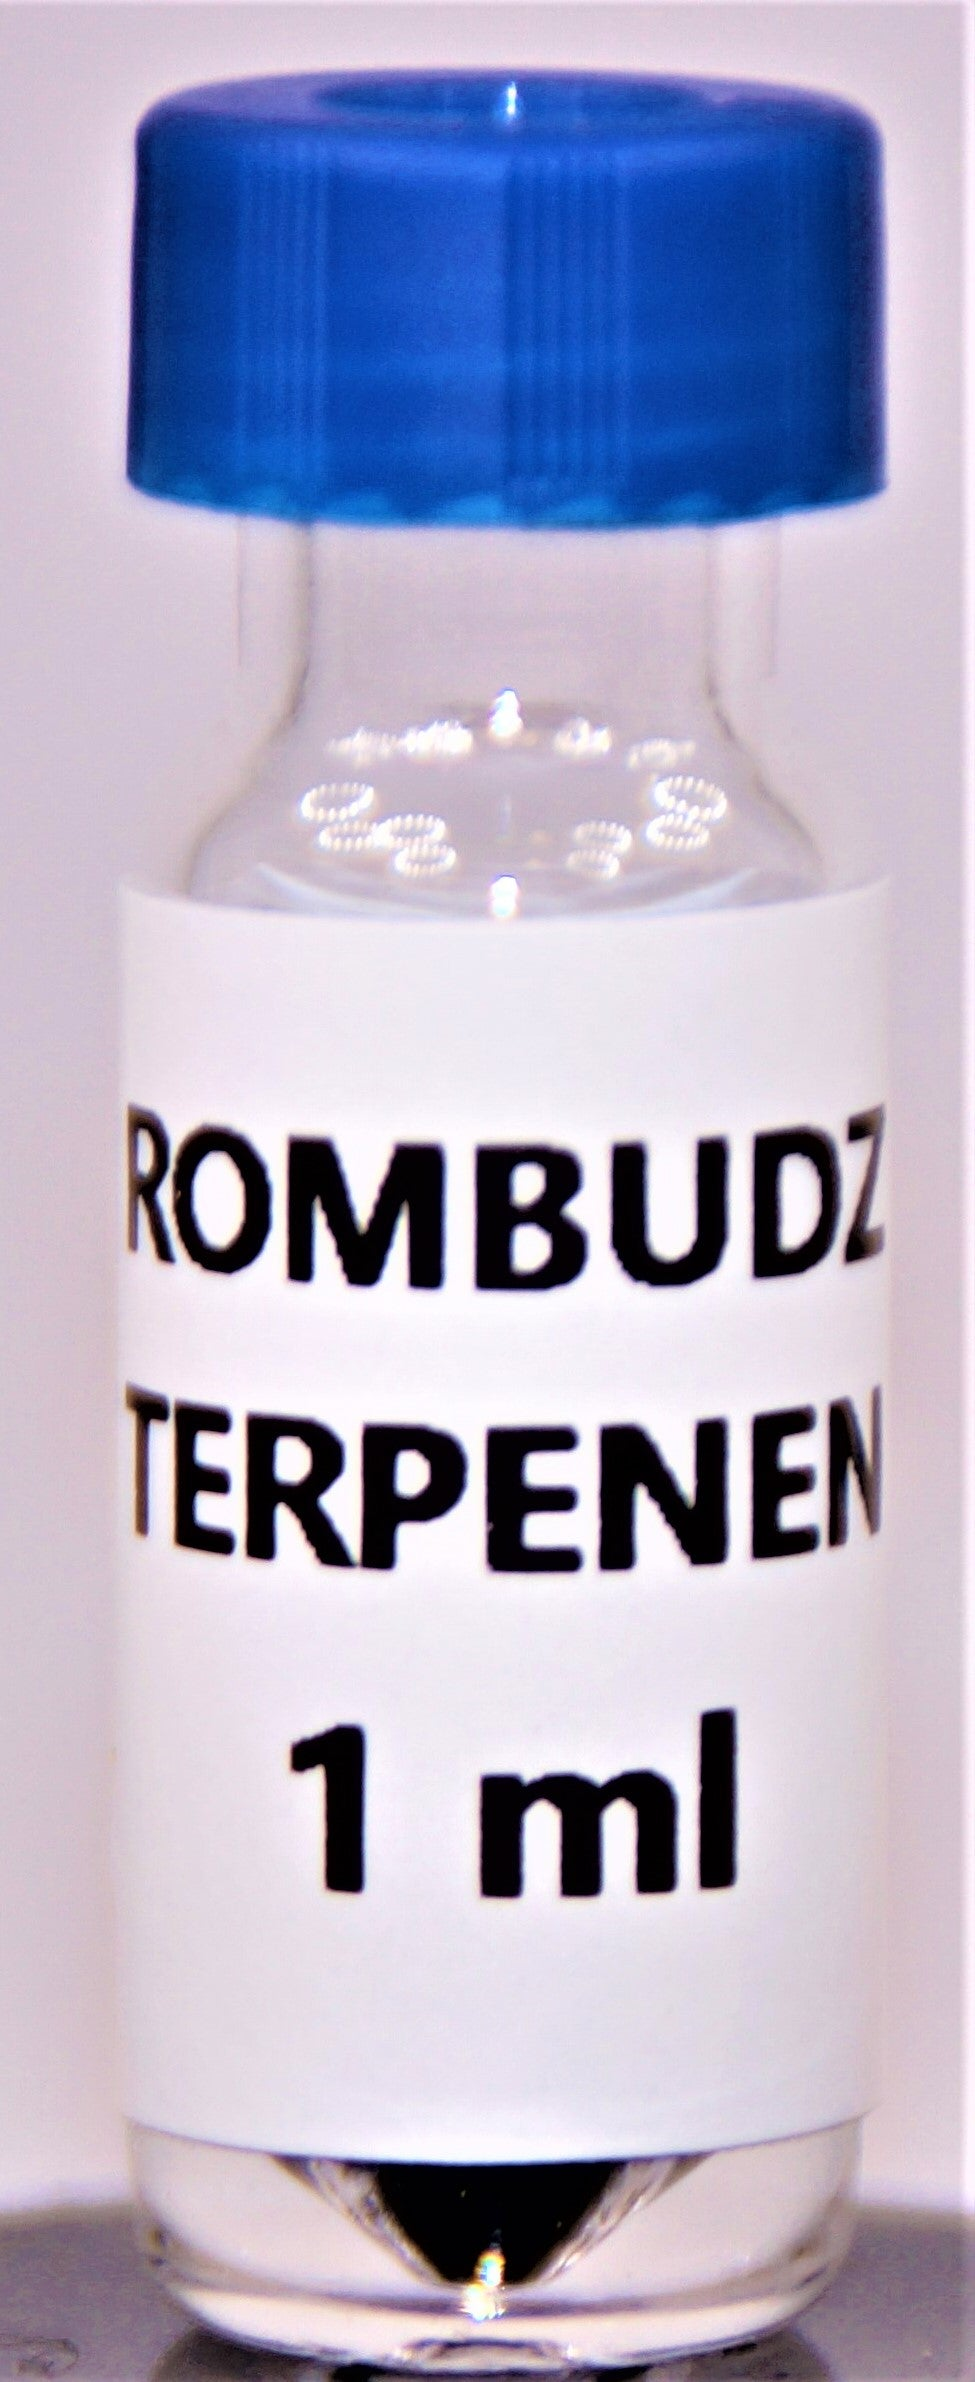 Rombudz Wedding Cake Terpenen